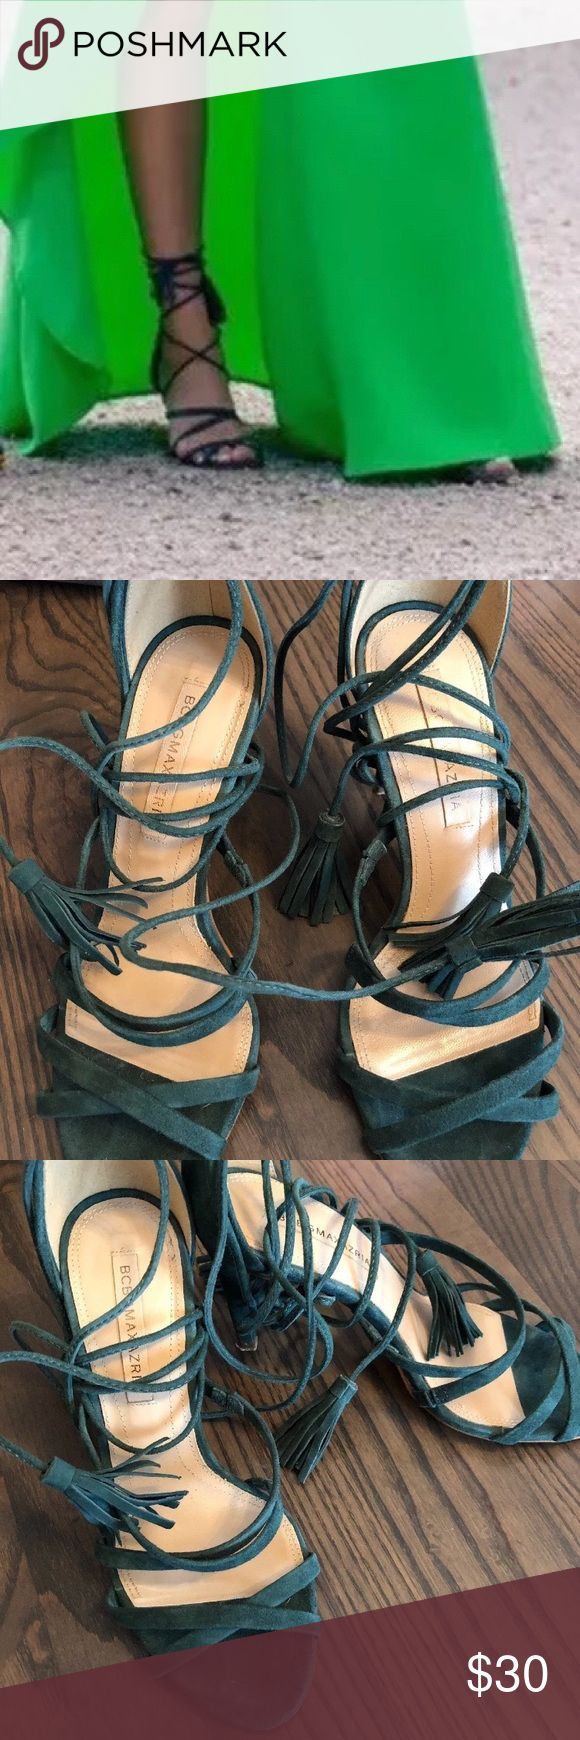 Bcbg shoes size 6.5 Gently worn for a photo shoot.  Bcbg summer shoe, size 6.5, green.  All sales final, ask all questions in advance. Payment due within 3 days. Thanks for looking. BCBG Shoes Heels